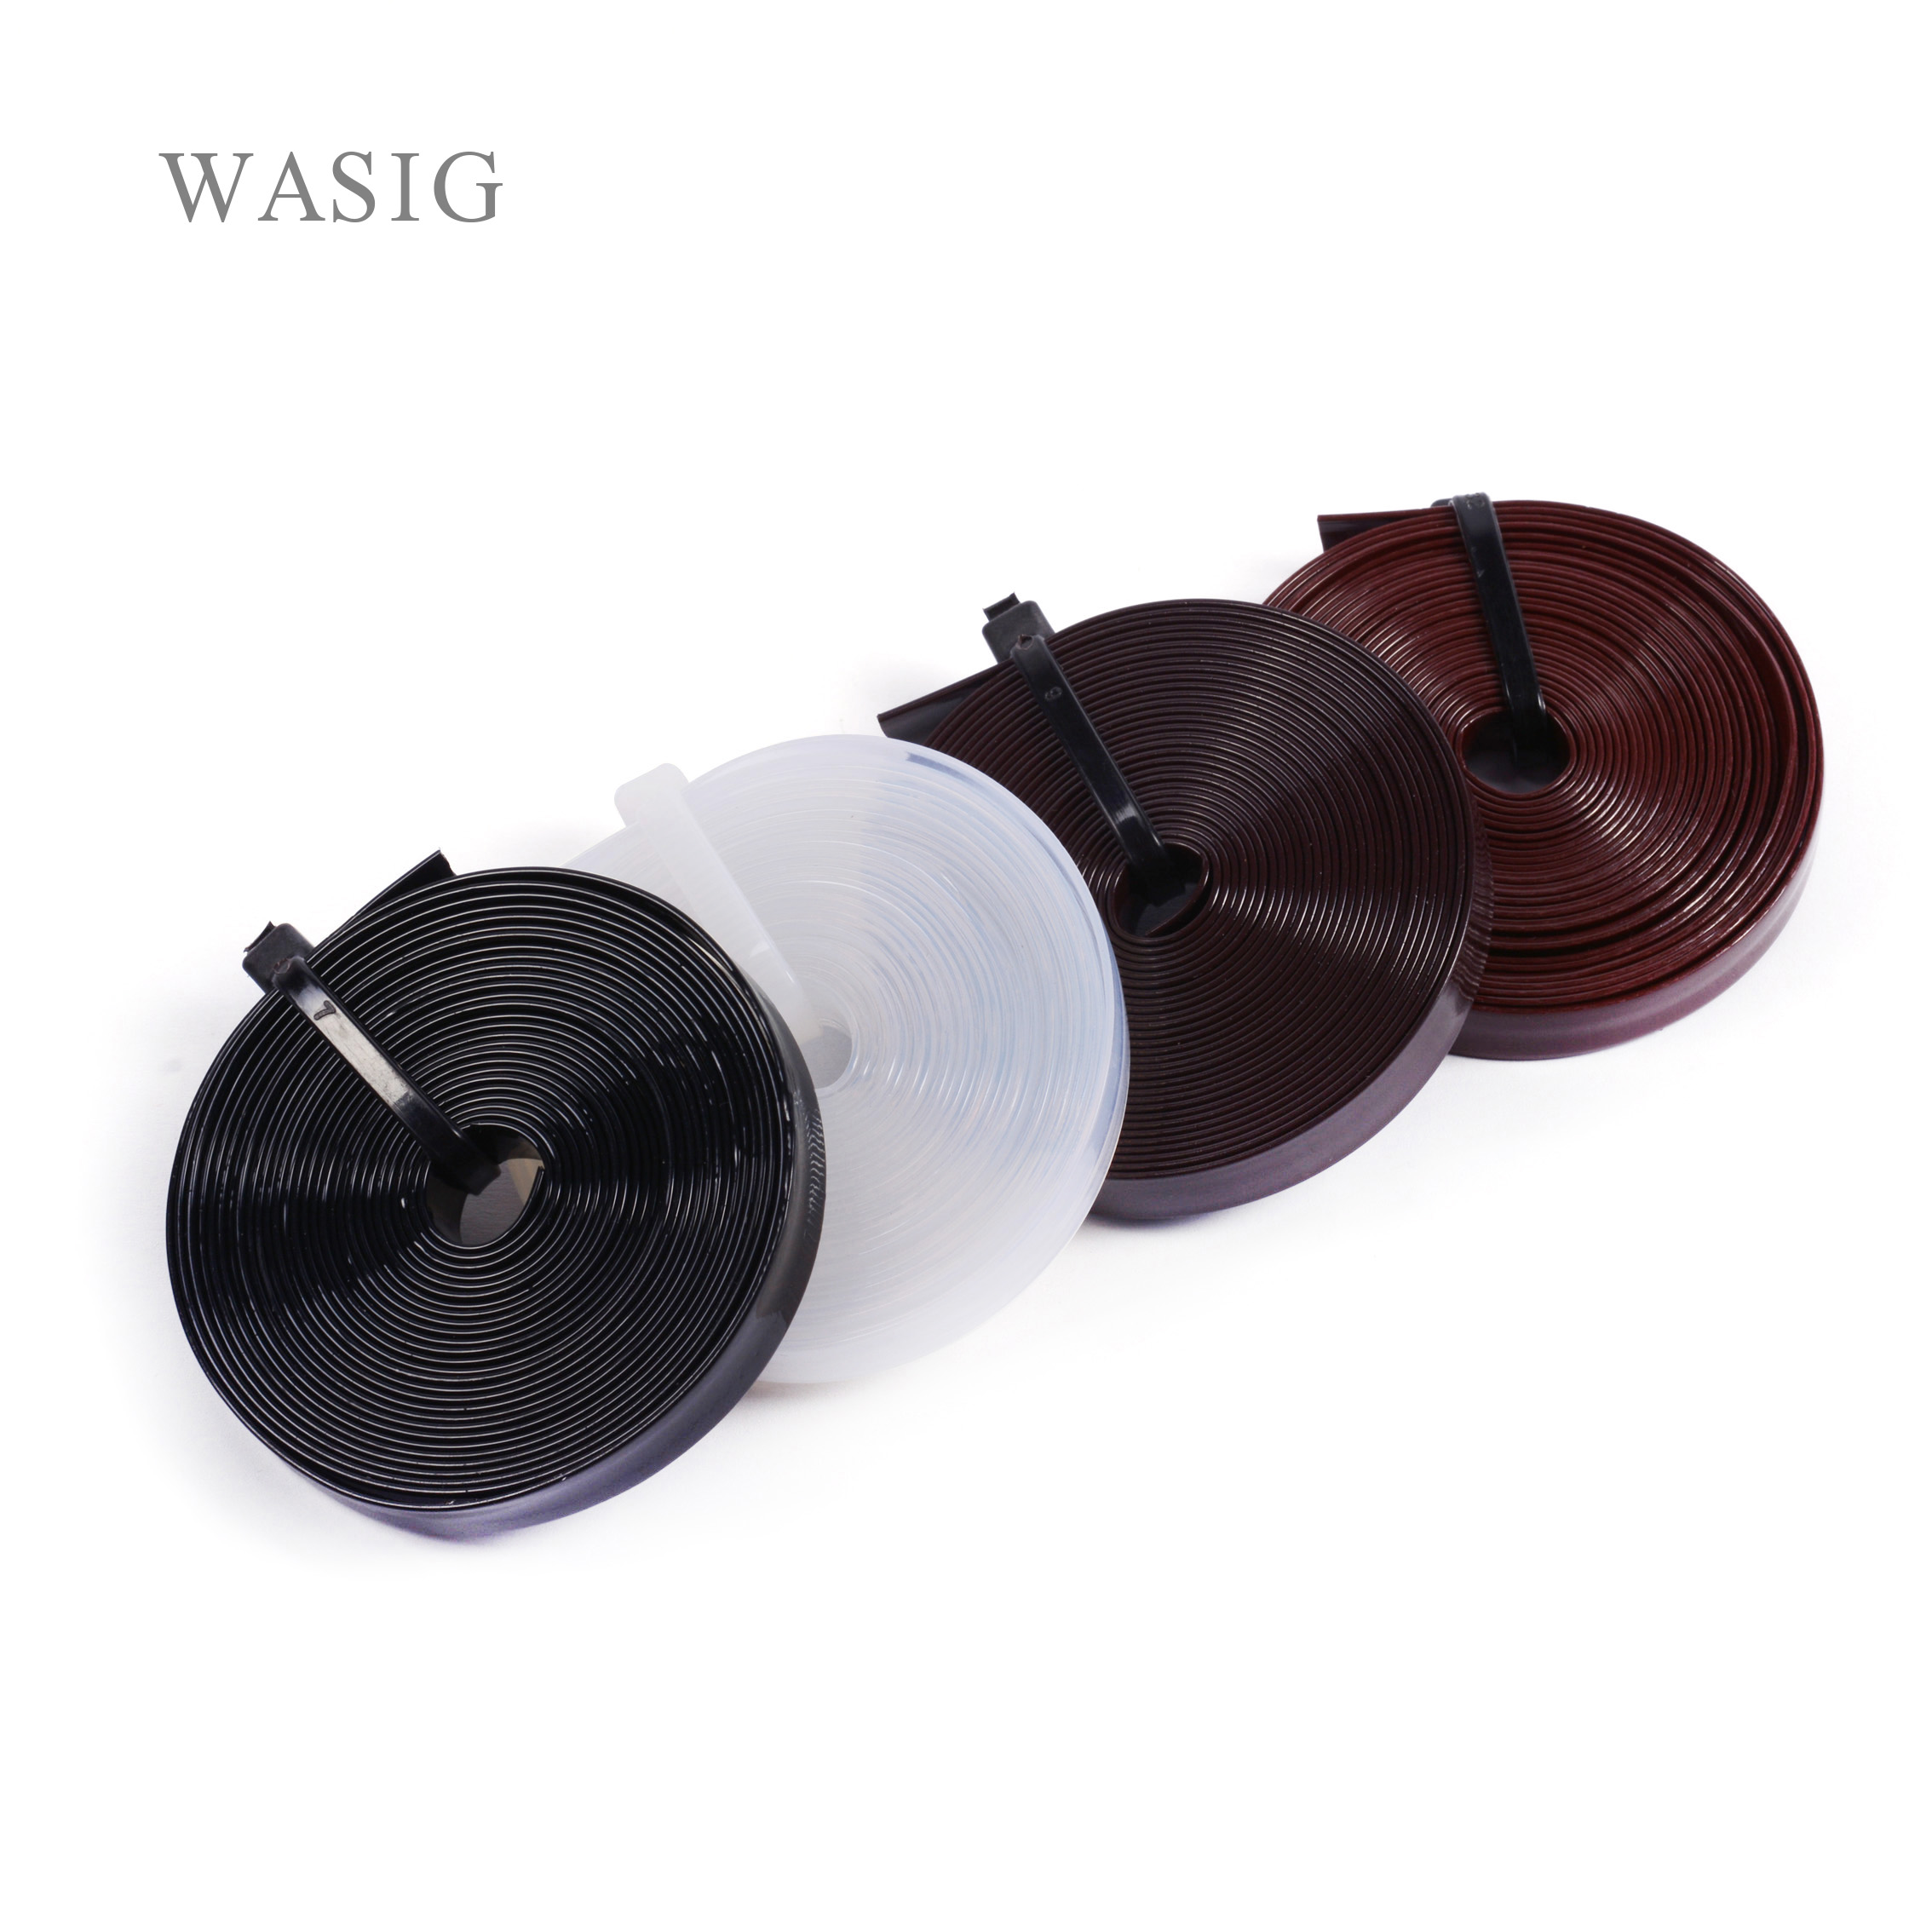 New 0.9*300cm Hair Extensions Hot Glue  Melt Fusion Keratin Glue Pre-bonded Tool For Hair Extension Salon Styling Tool